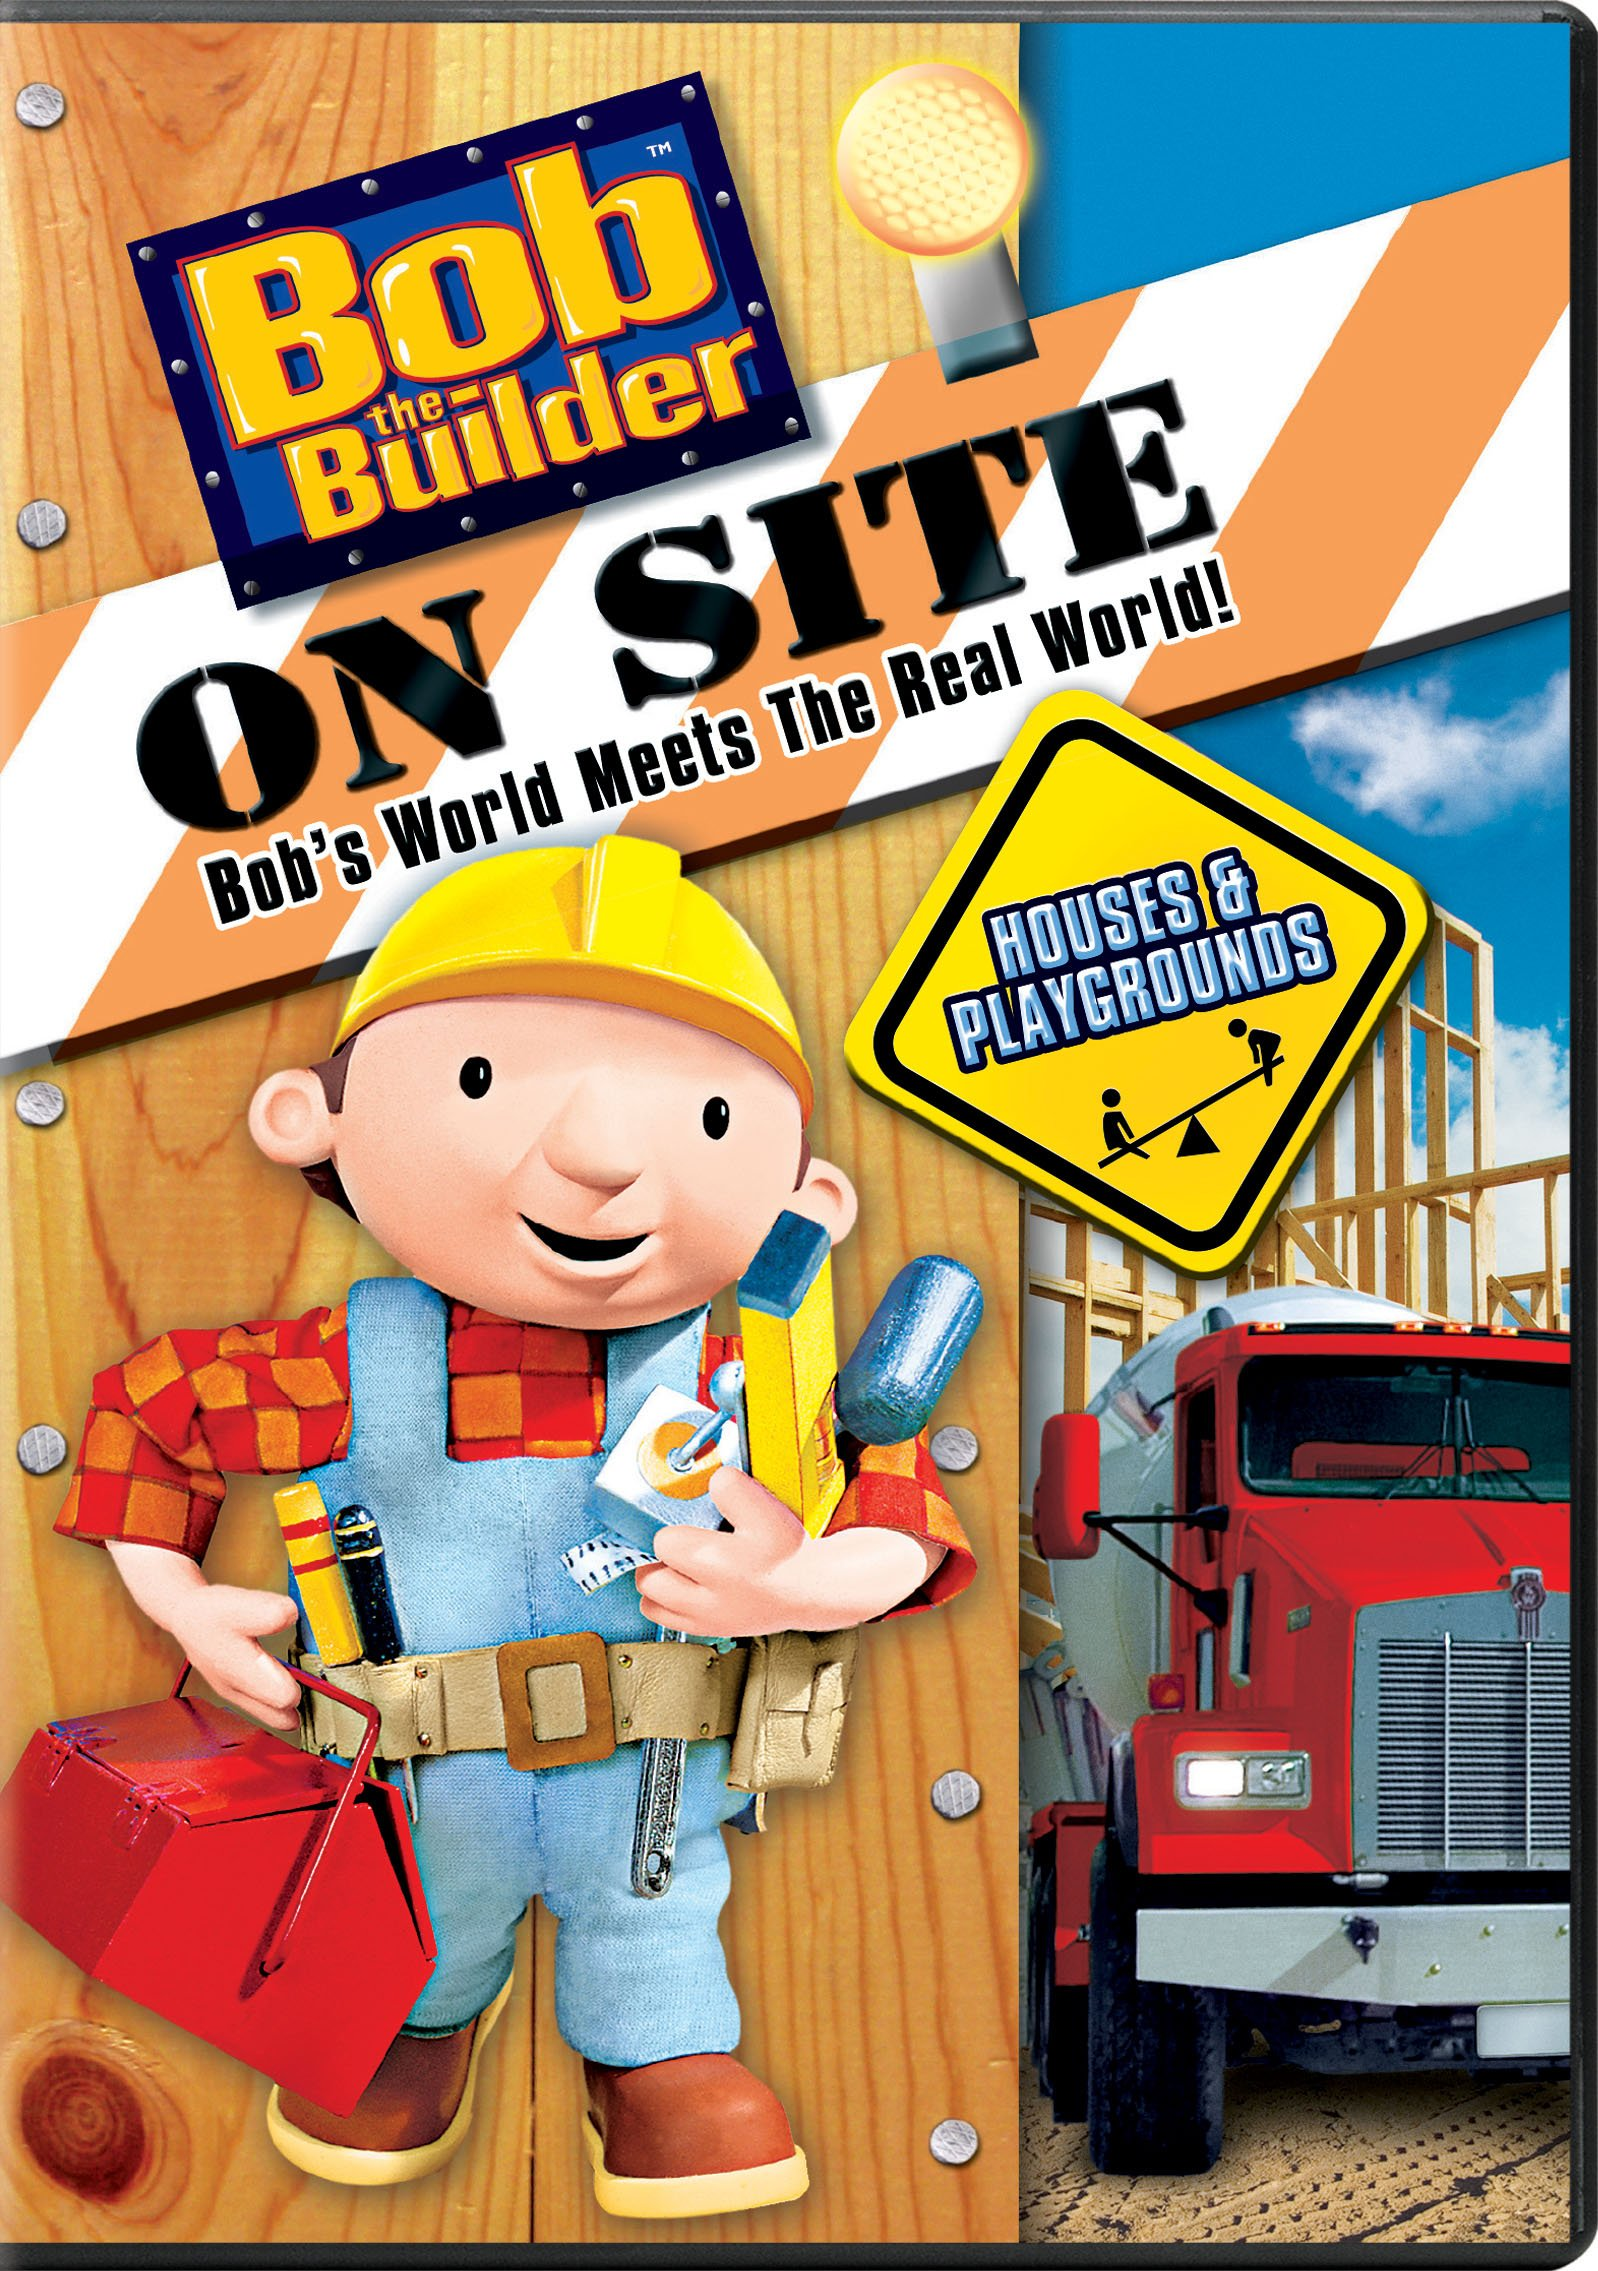 DVD : On Site: Houses & Playgrounds (Full Frame, Dubbed, Dolby)